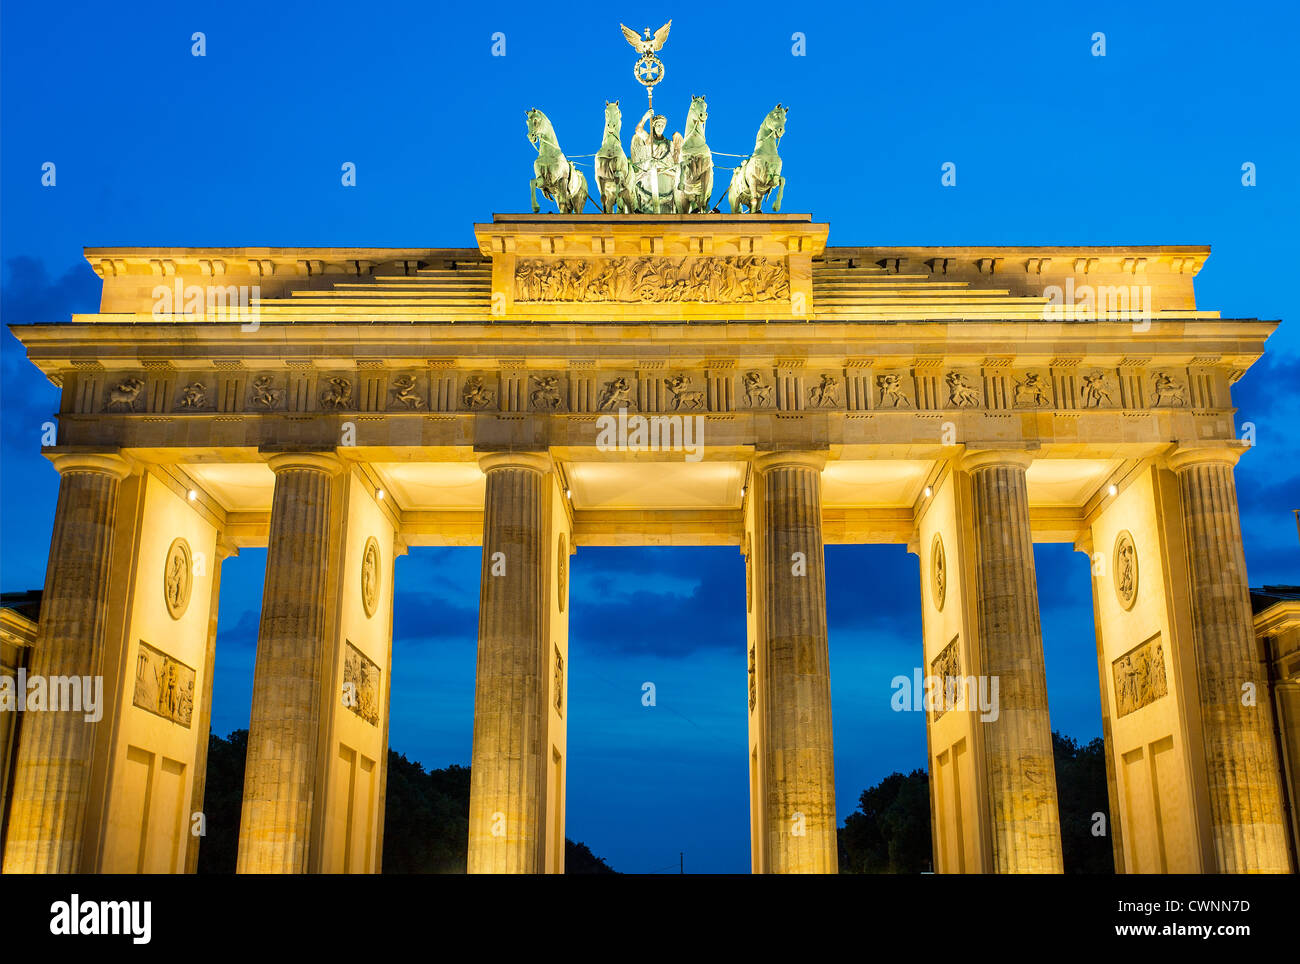 Berlin, Brandenburger Tor in der Abenddämmerung Stockfoto